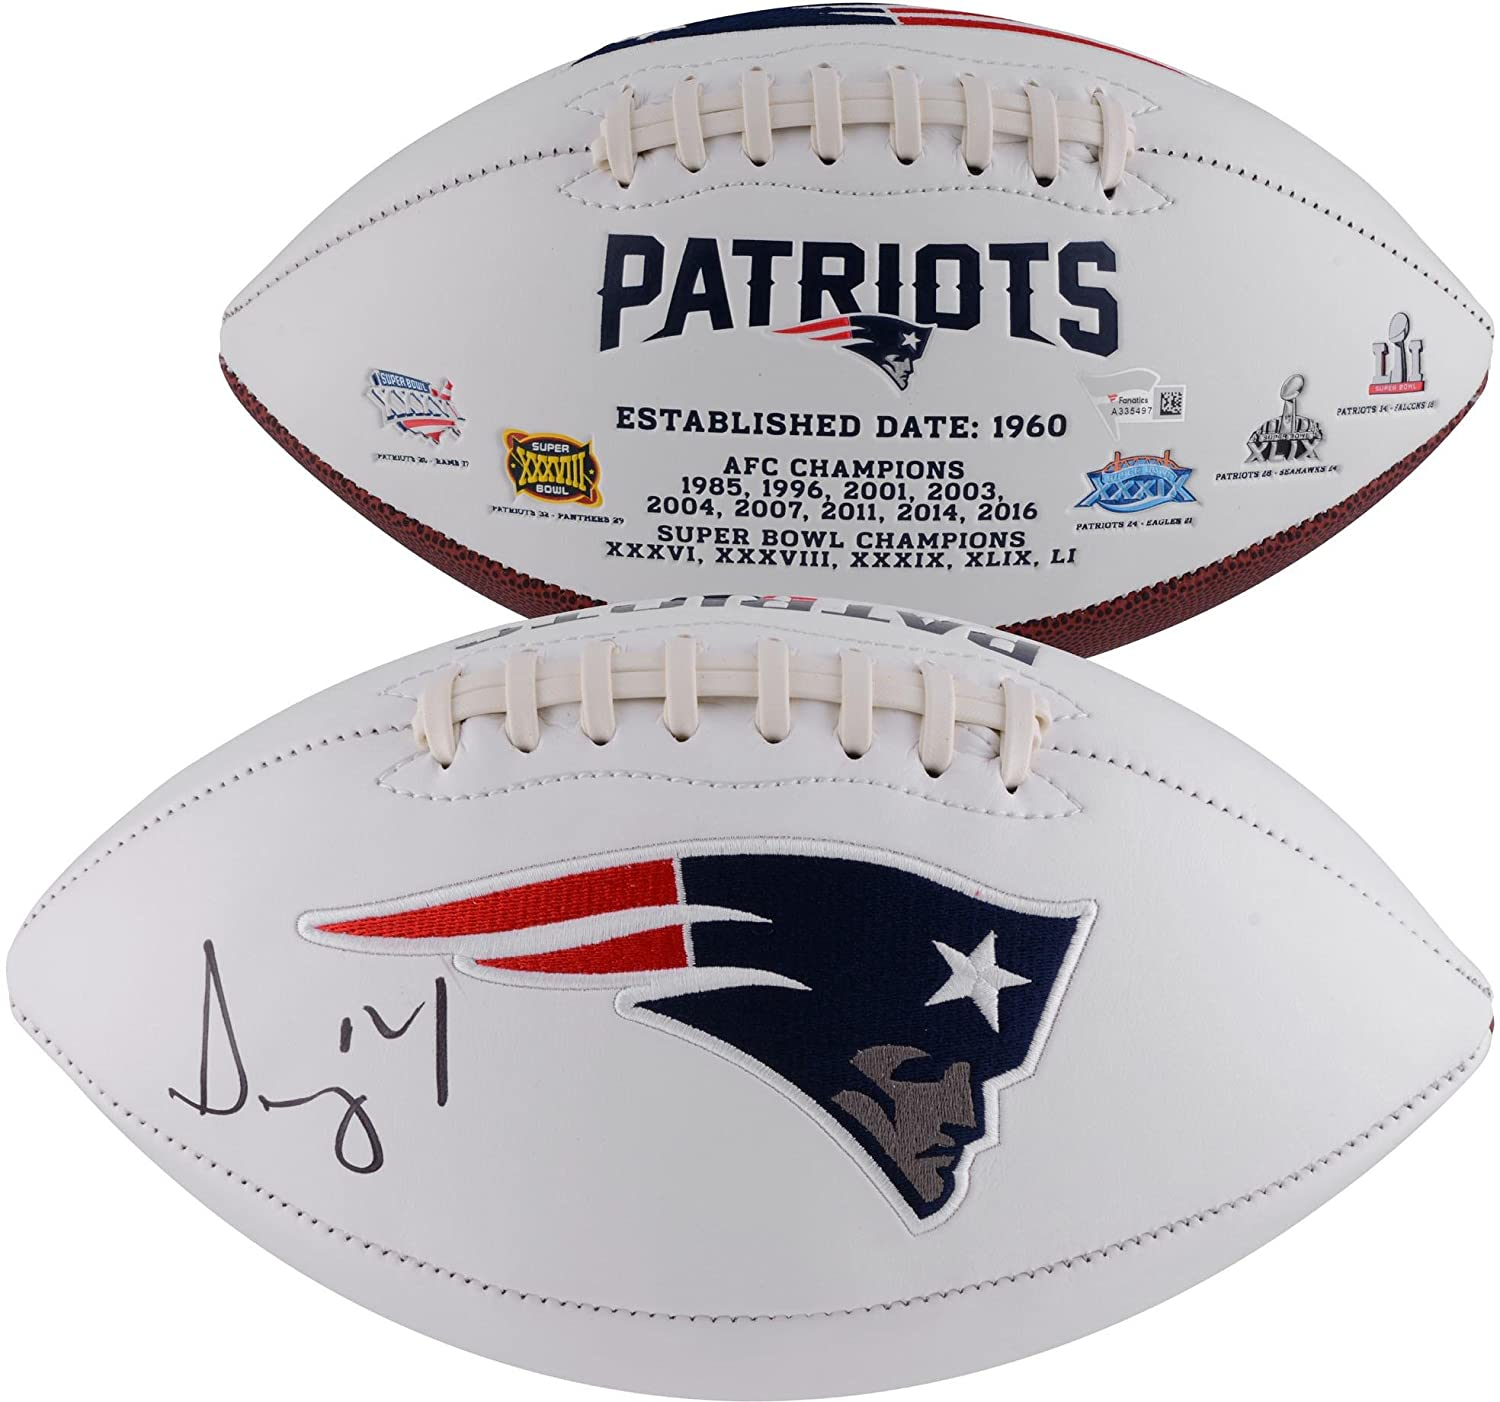 Sony Michel New England Patriots Autographed White Panel Football - Fanatics Authentic Certified - Autographed Footballs